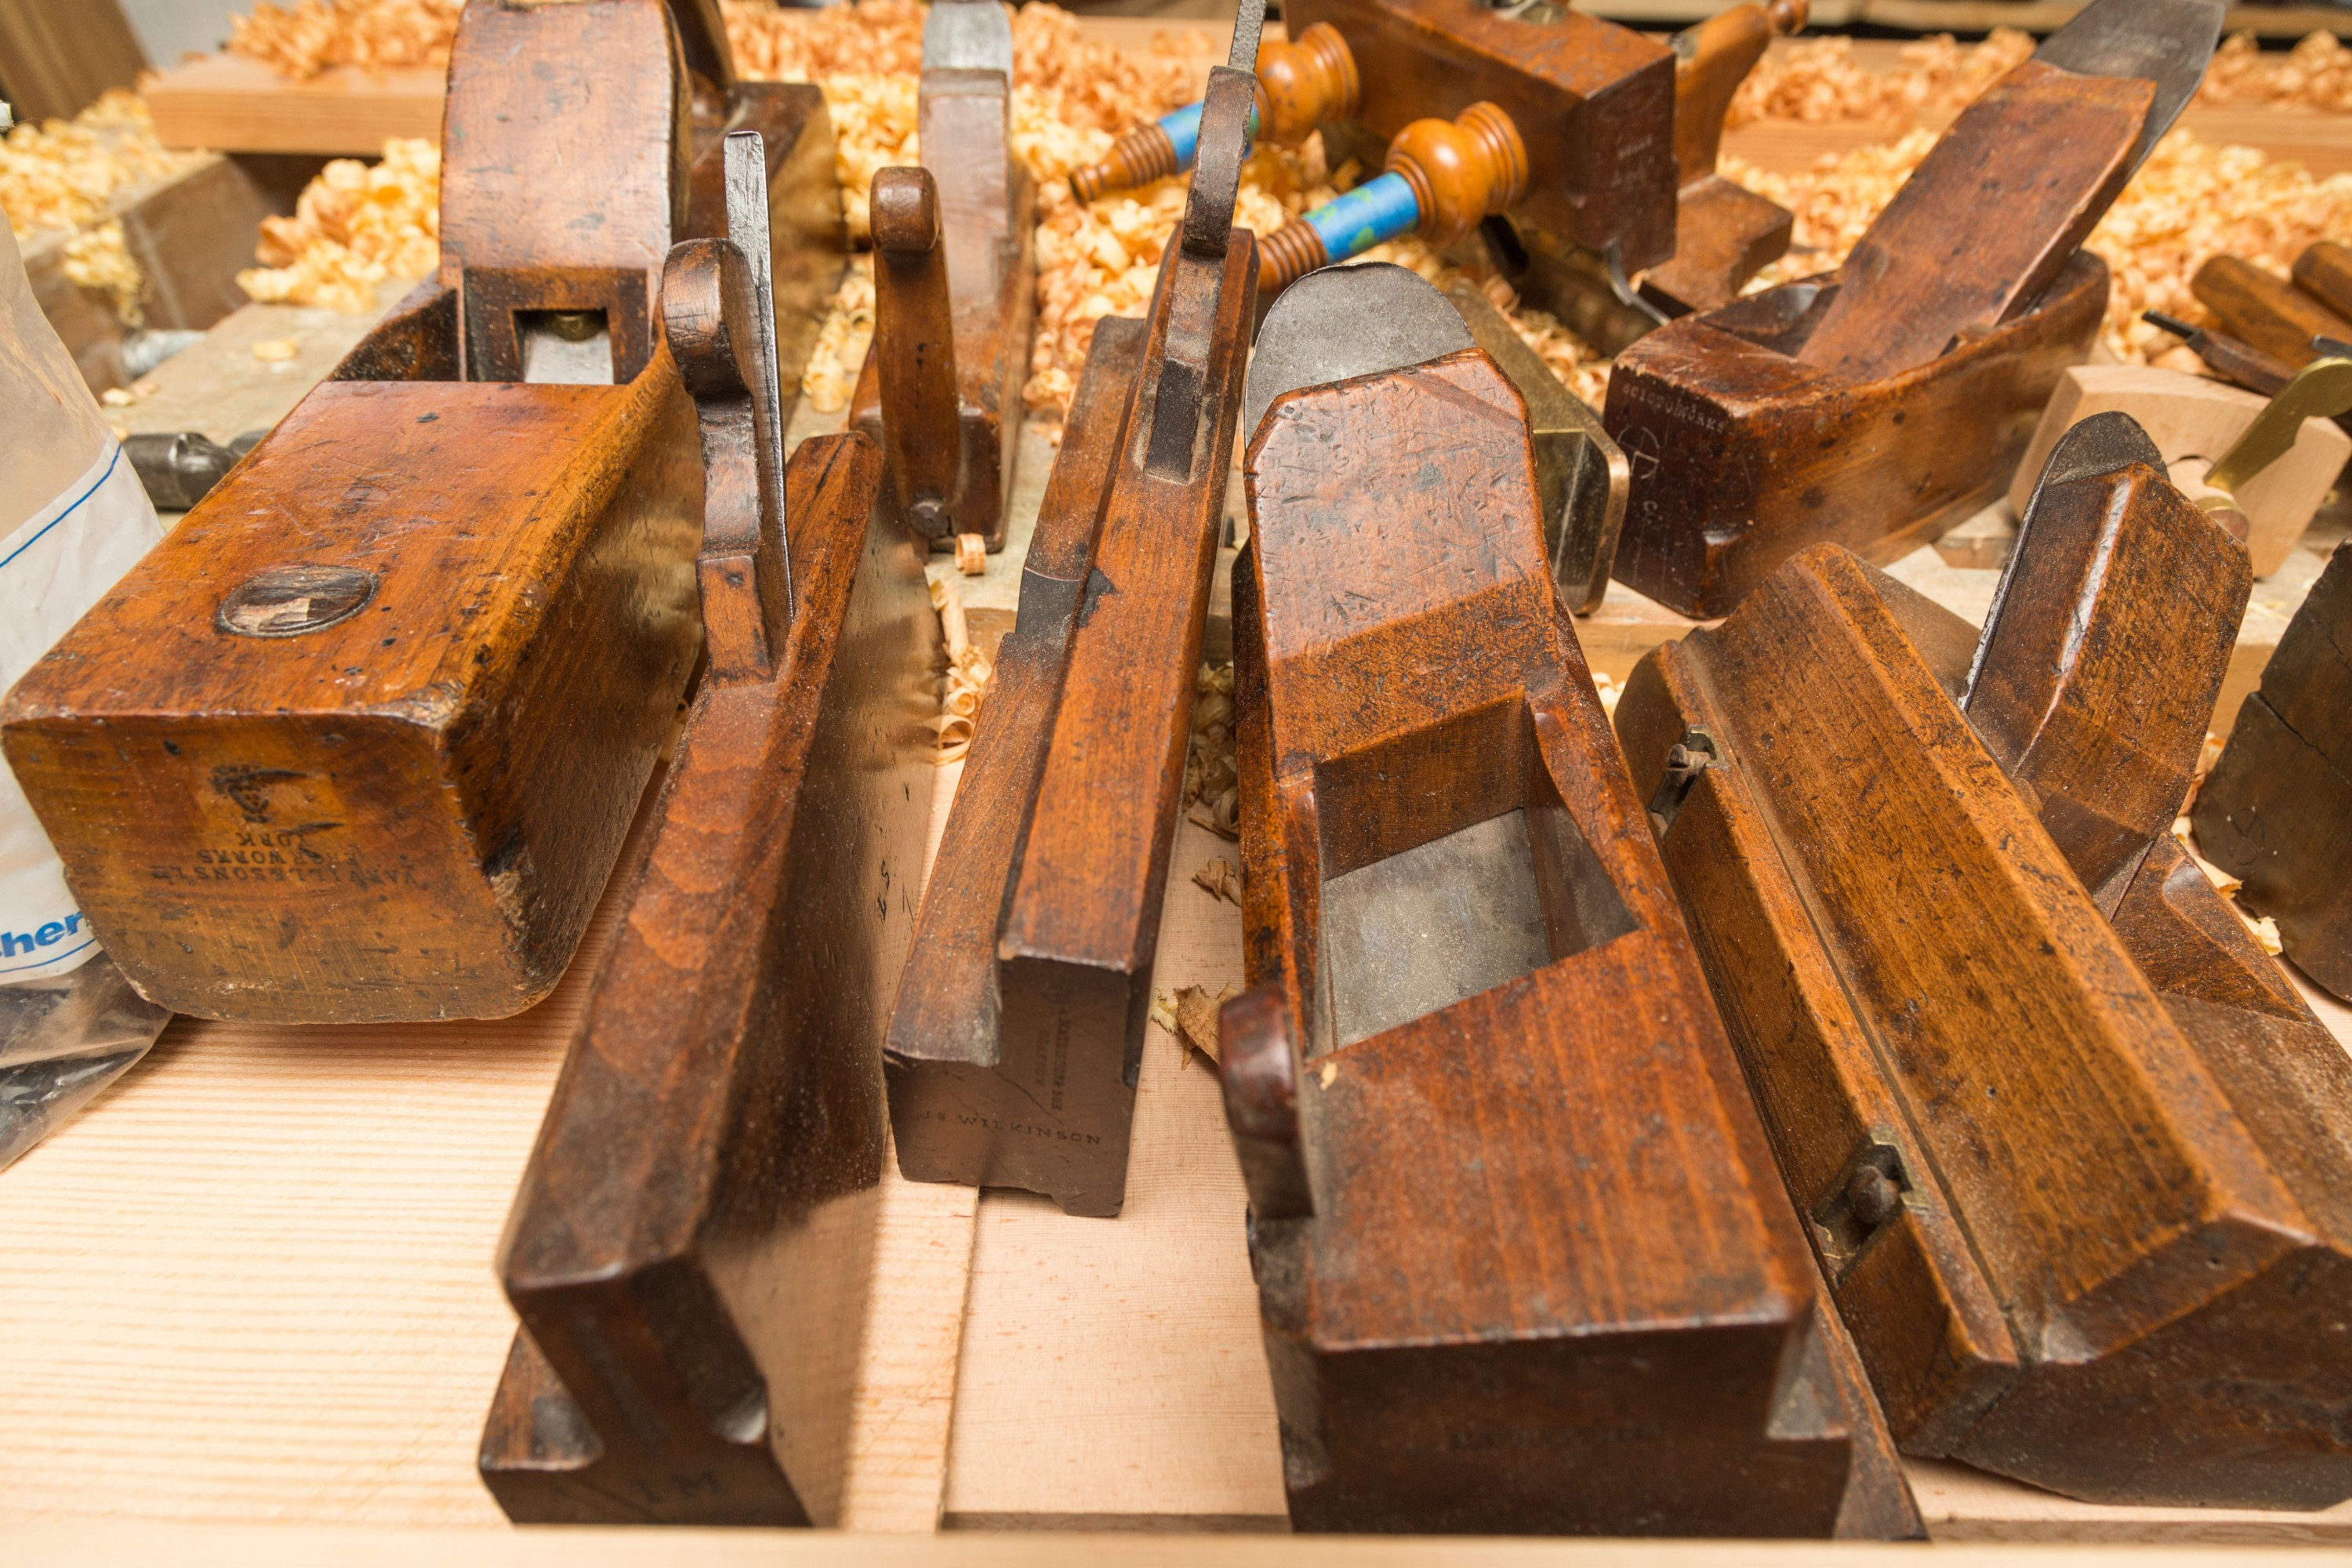 Planes shape wood by using strength to force the iron blade across the surface. From left: badger plane, two molding planes, and two dado planes.